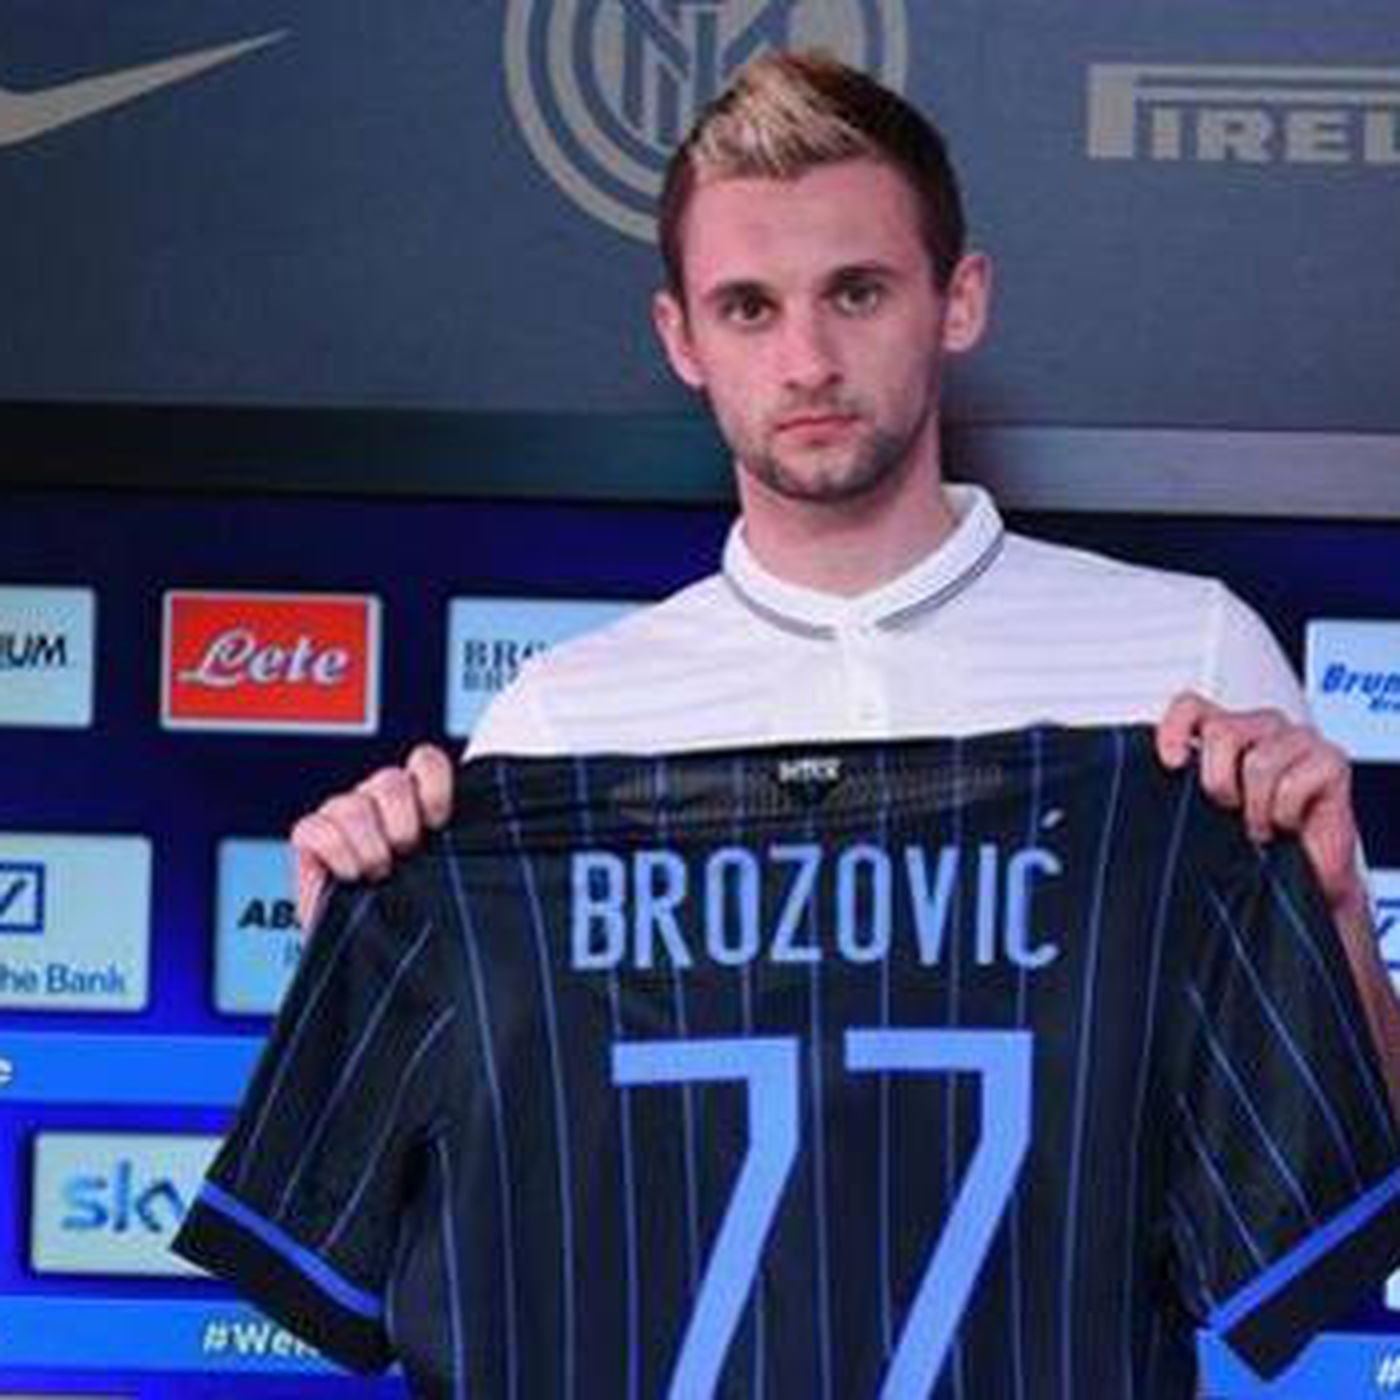 new style 3b681 74772 New Inter player Brozovic introduced to fans - Serpents of ...